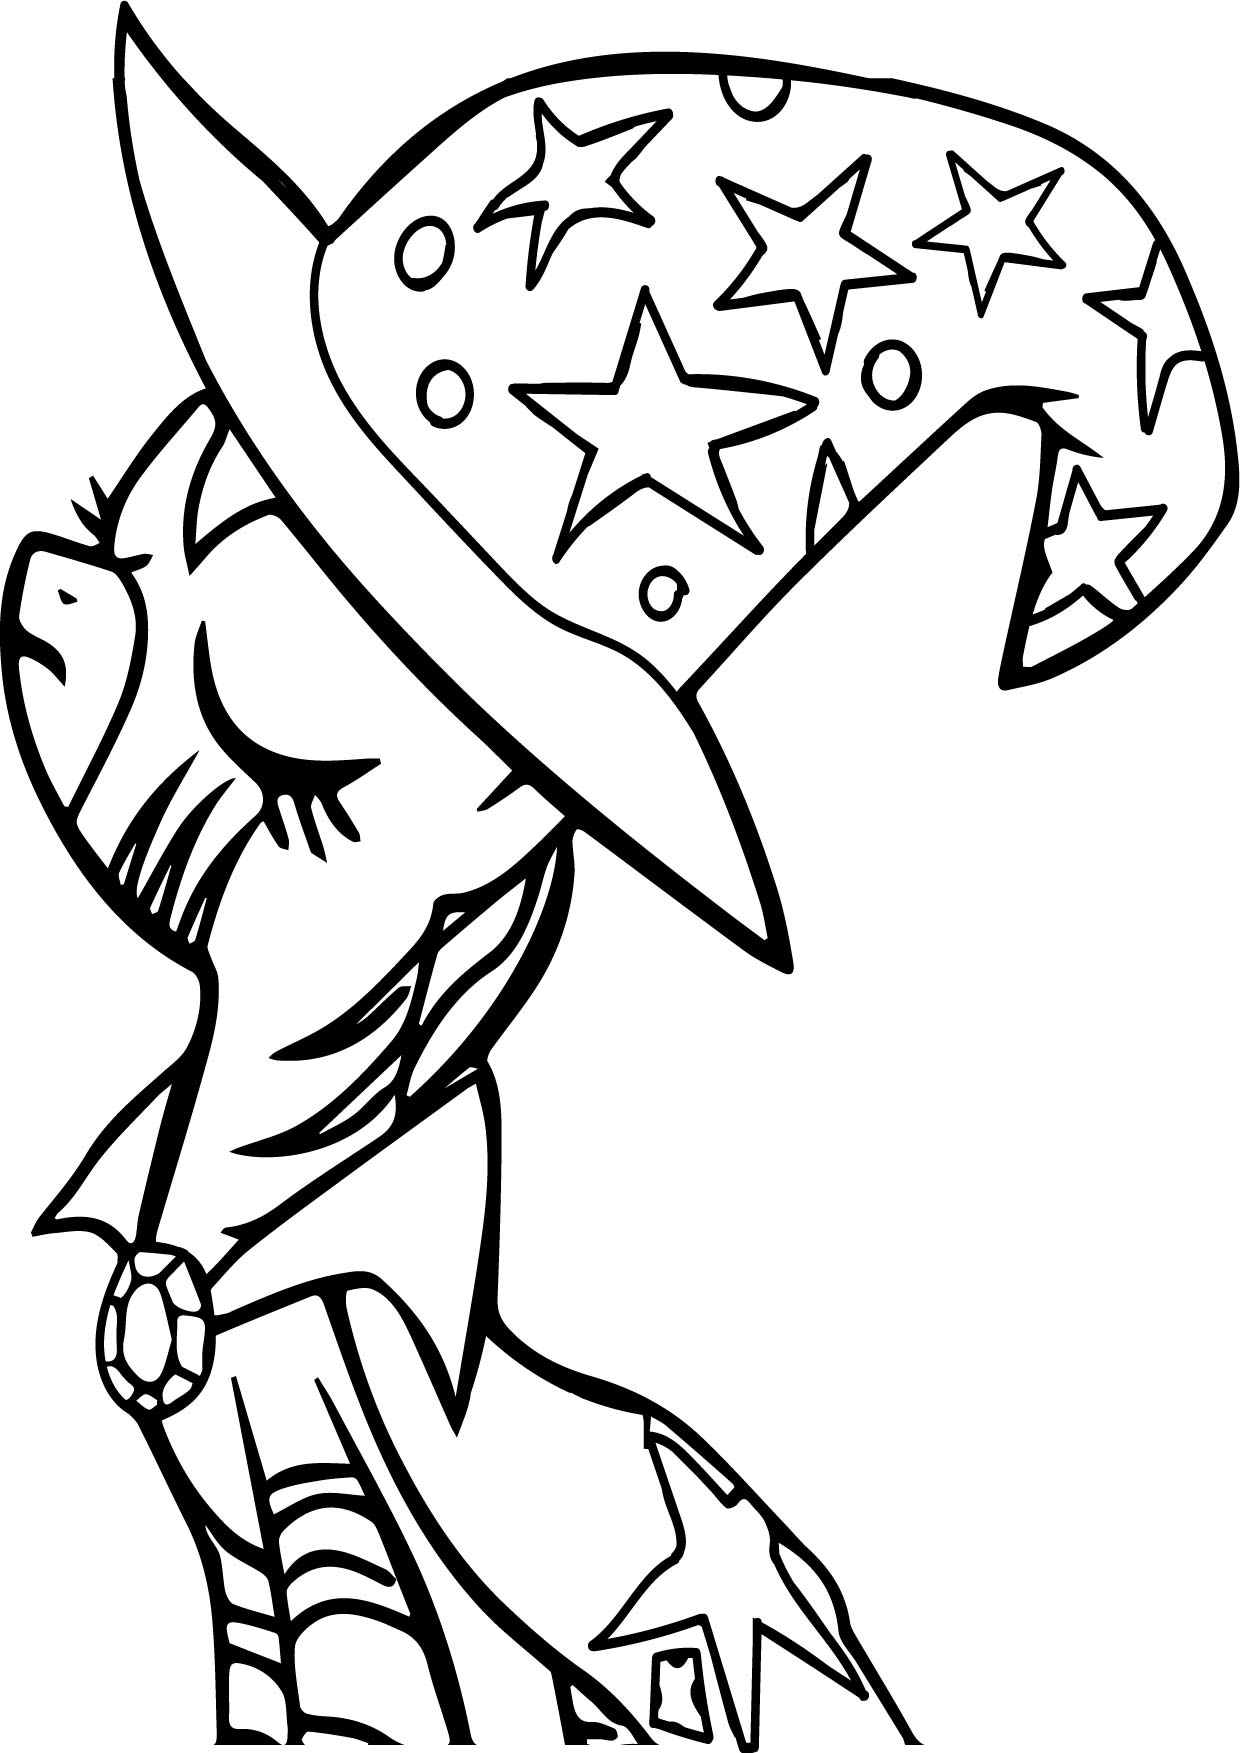 My Little Pony Zecora Coloring Pages : Zecora my little pony friendship is magic mlp cartoons